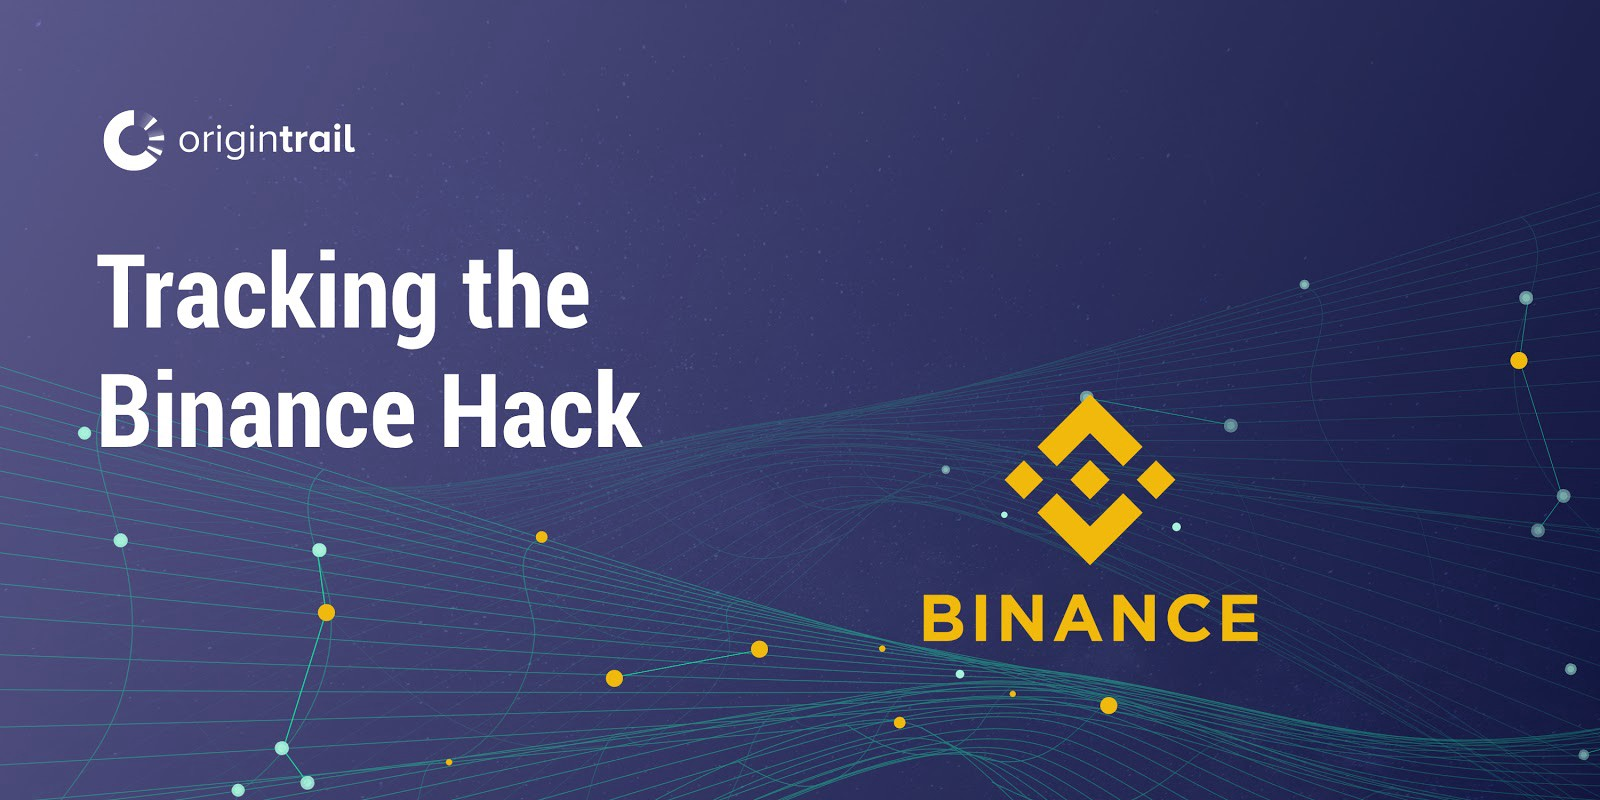 $40 Million Worth of Bitcoin Stolen from Binance Now Traced Using OriginTrail